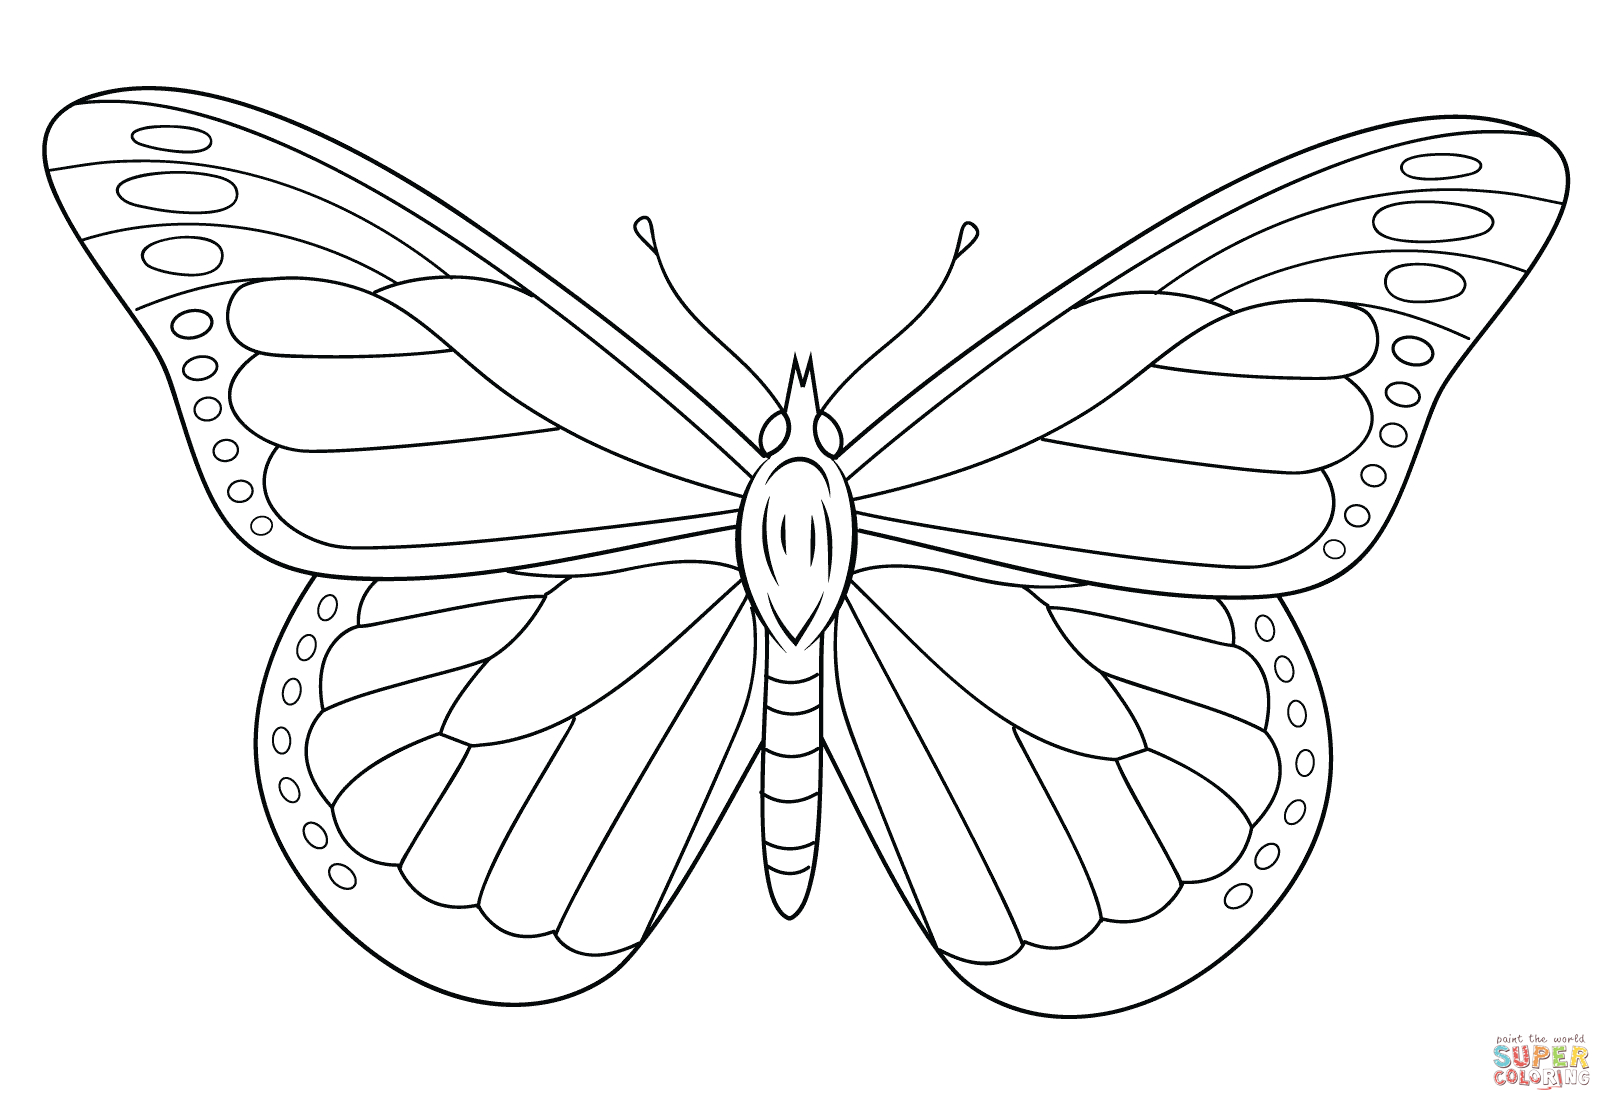 Monarch Butterfly Coloring Page | Free Printable Coloring Pages - Free Printable Butterfly